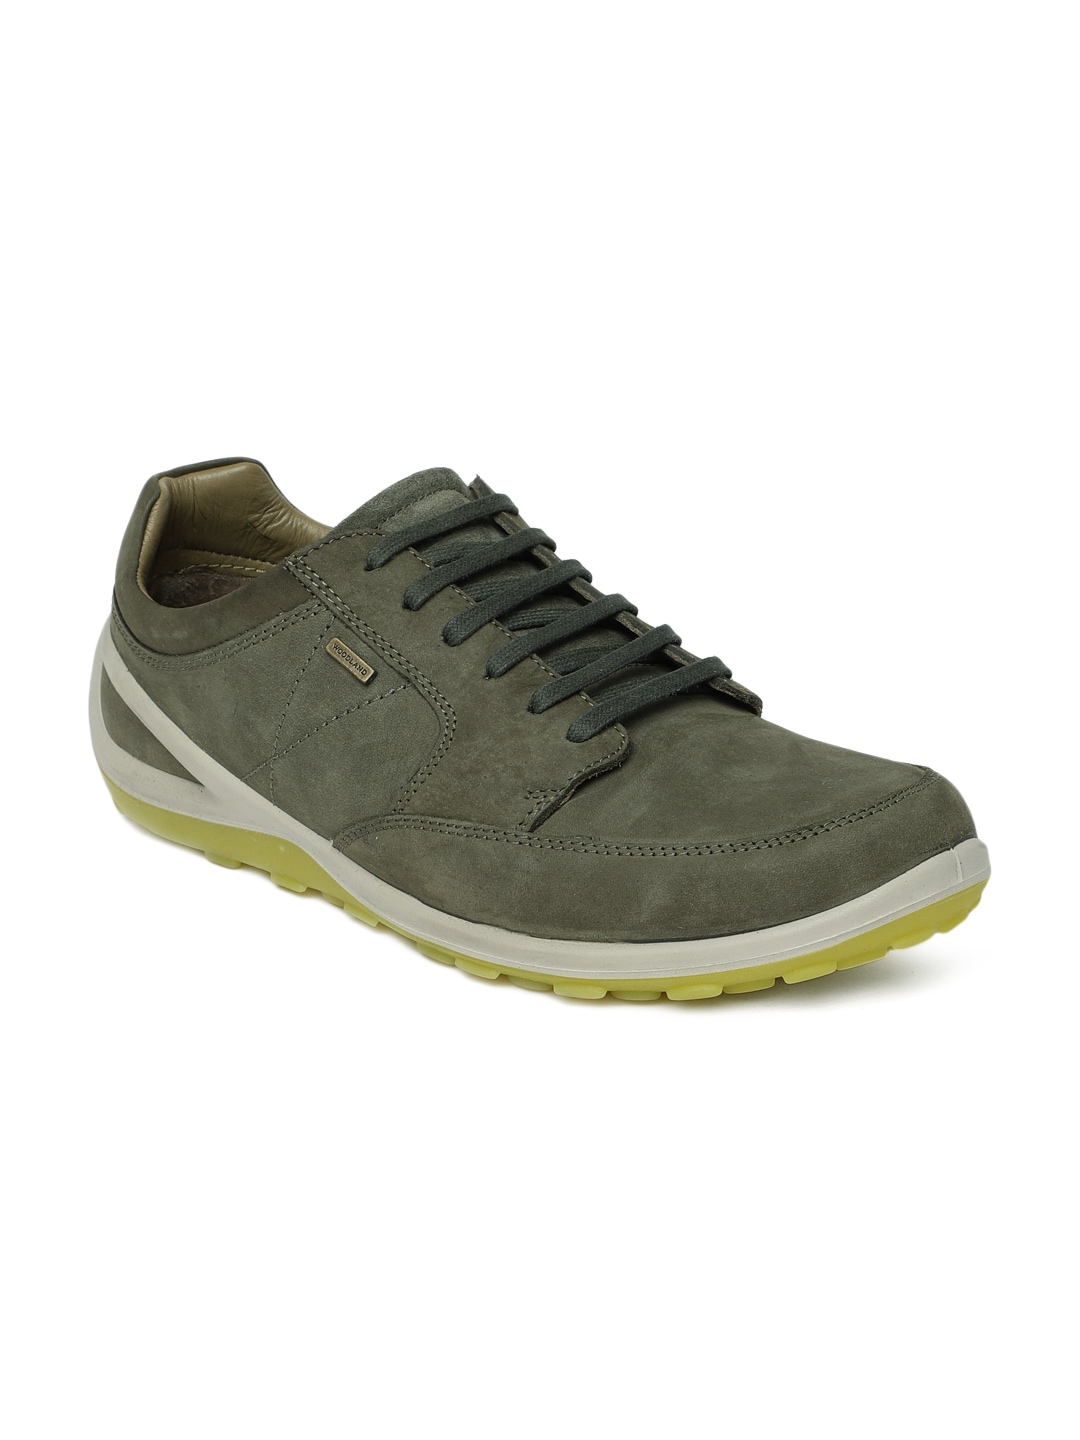 in India Green Casual Olive Olive Shoes Green Shoes online Casual Buy W9DIEH2